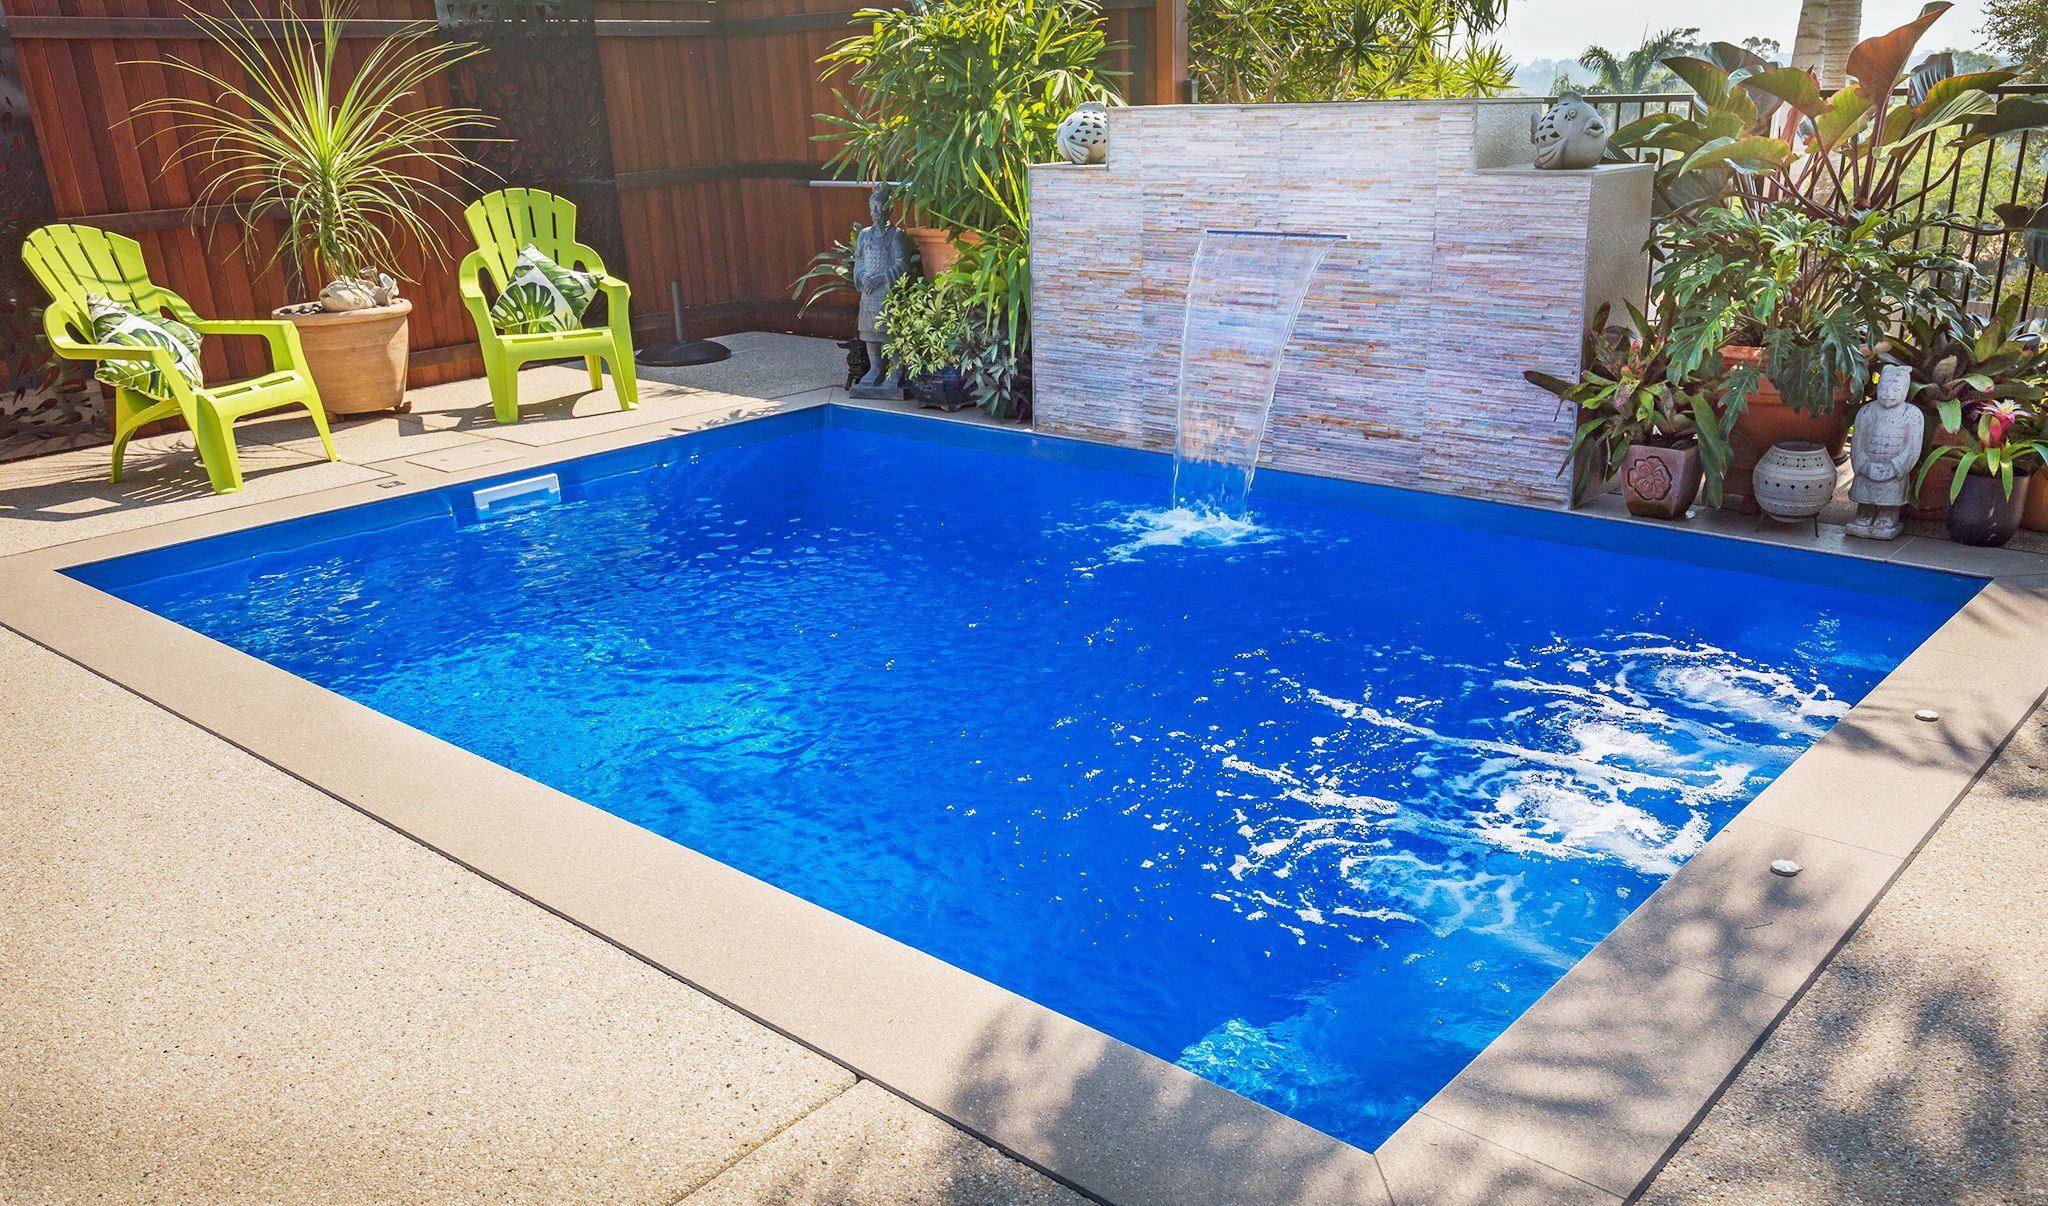 Leisure Pools Platinum Plunge In Bermuda Blue With Cascade Water